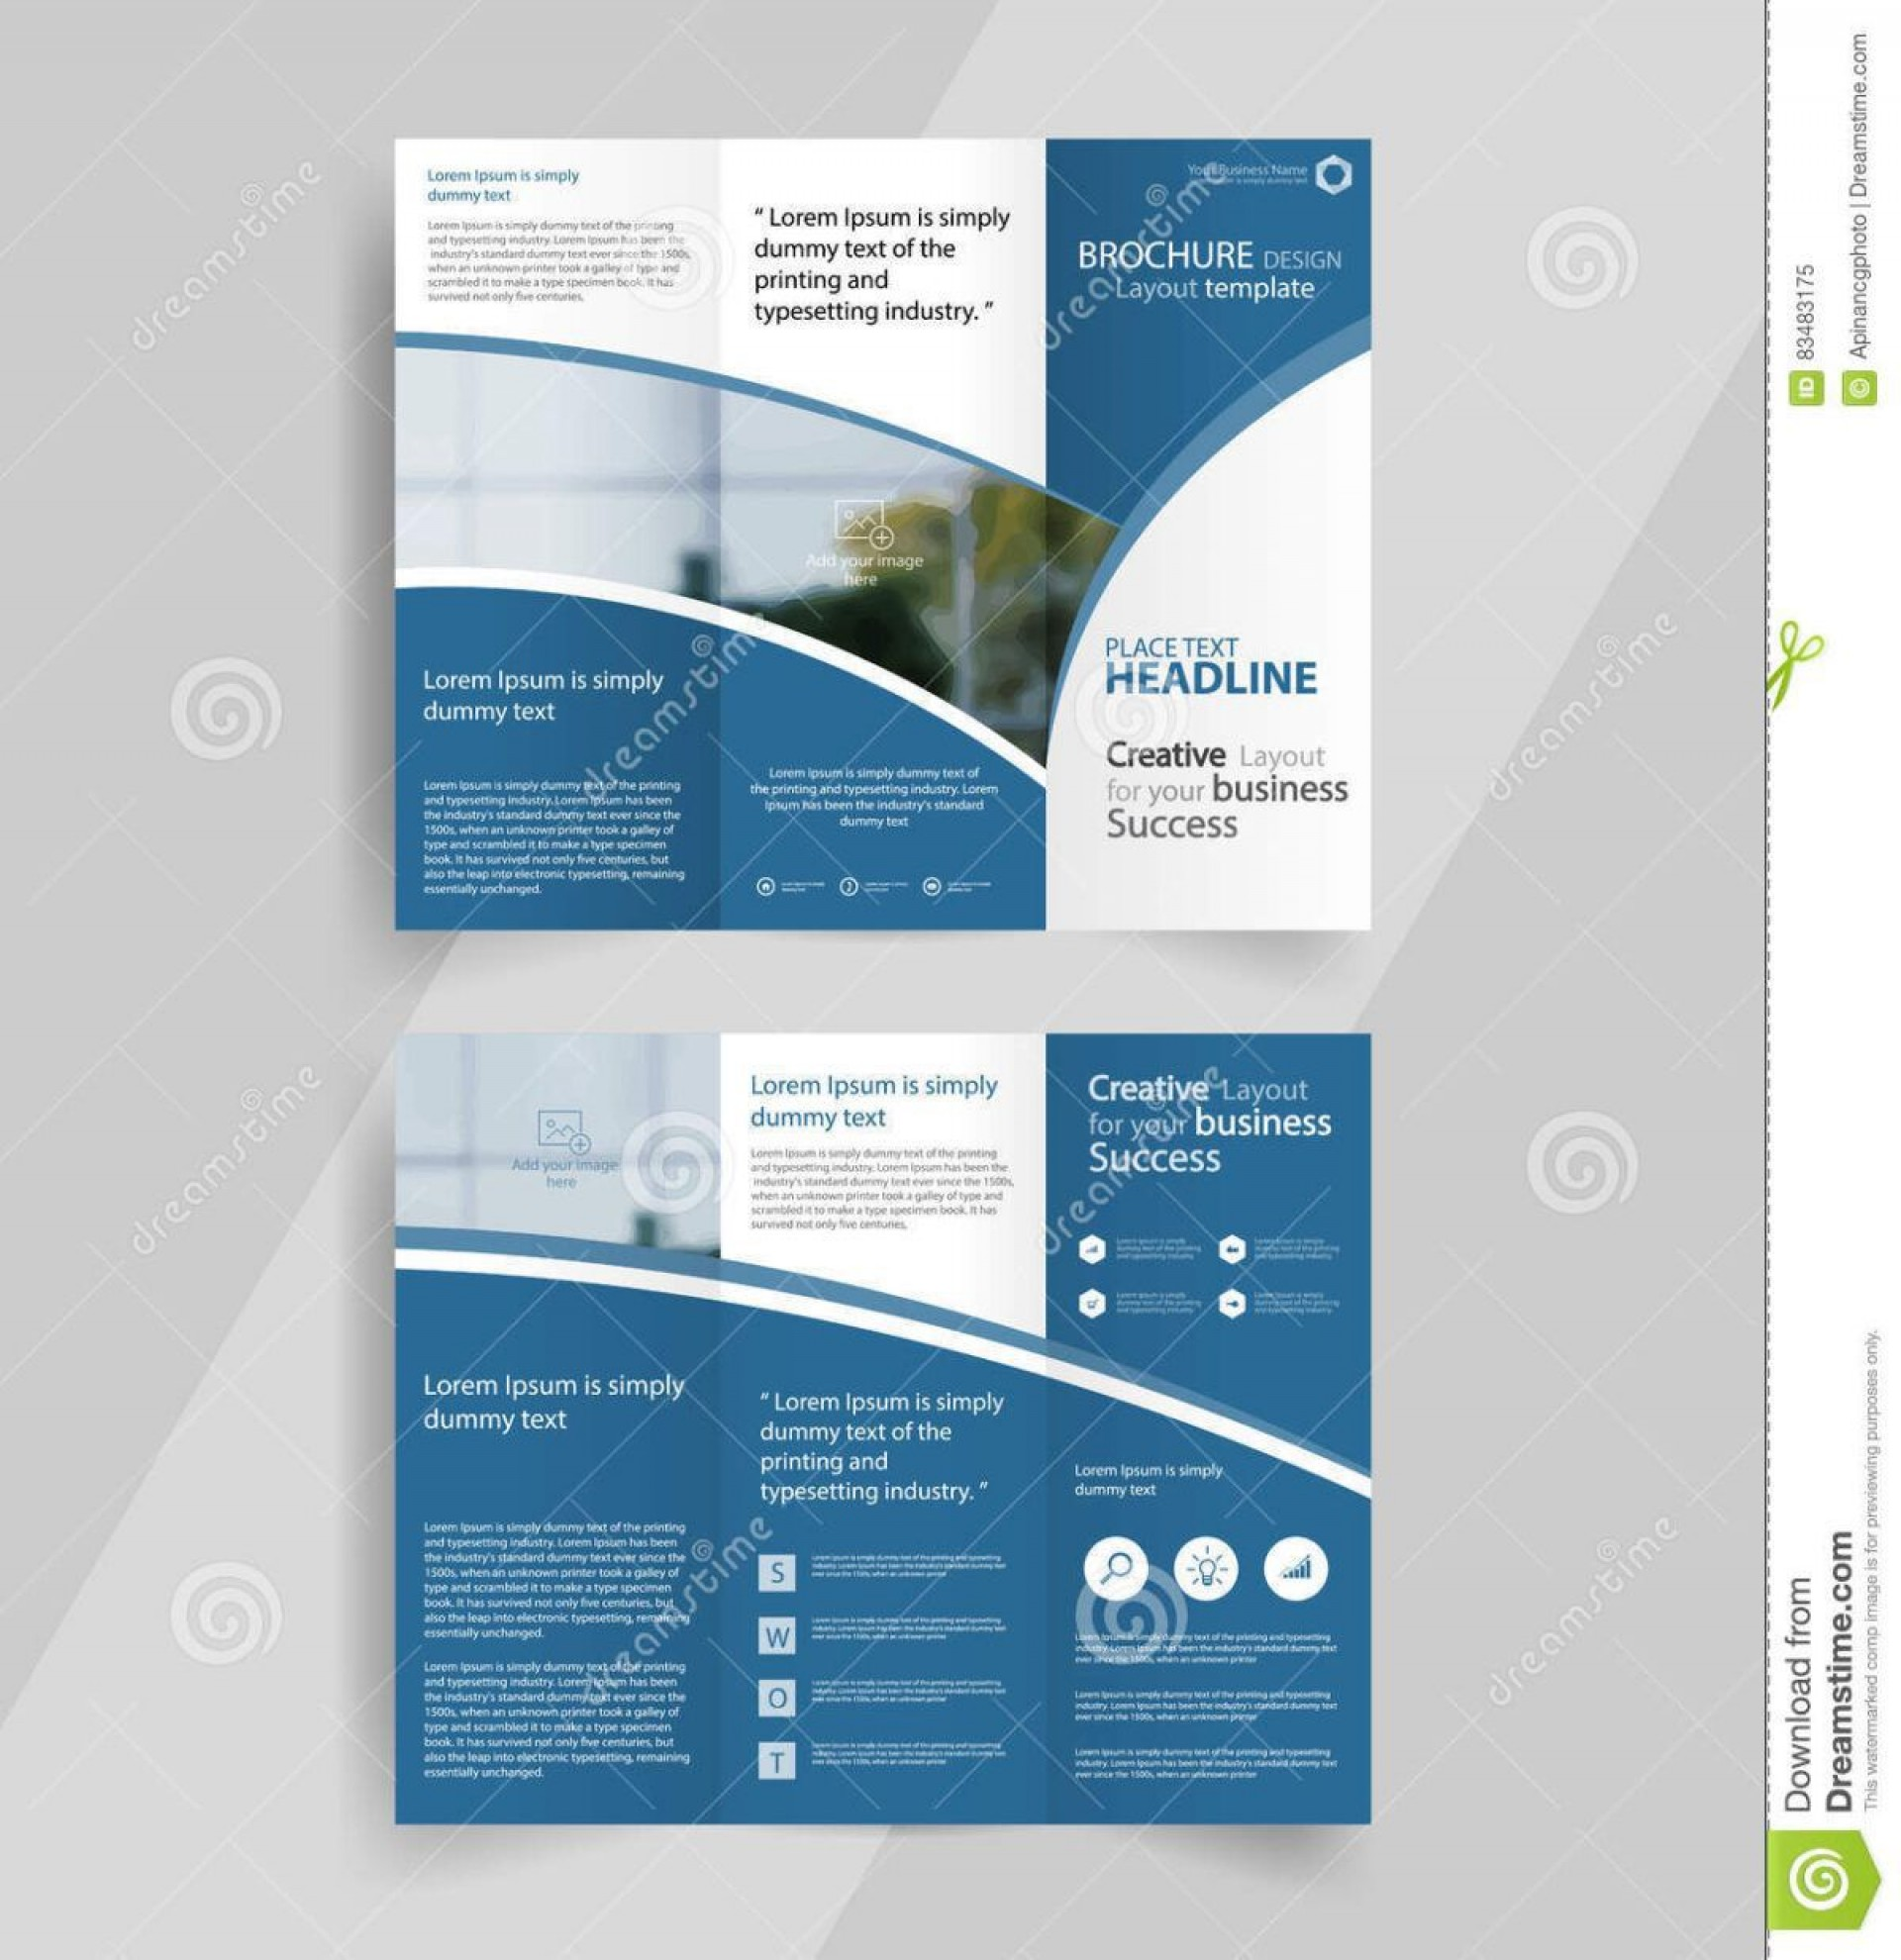 001 Fascinating Three Fold Brochure Template Free Download Highest Quality  3 Publisher Psd1920